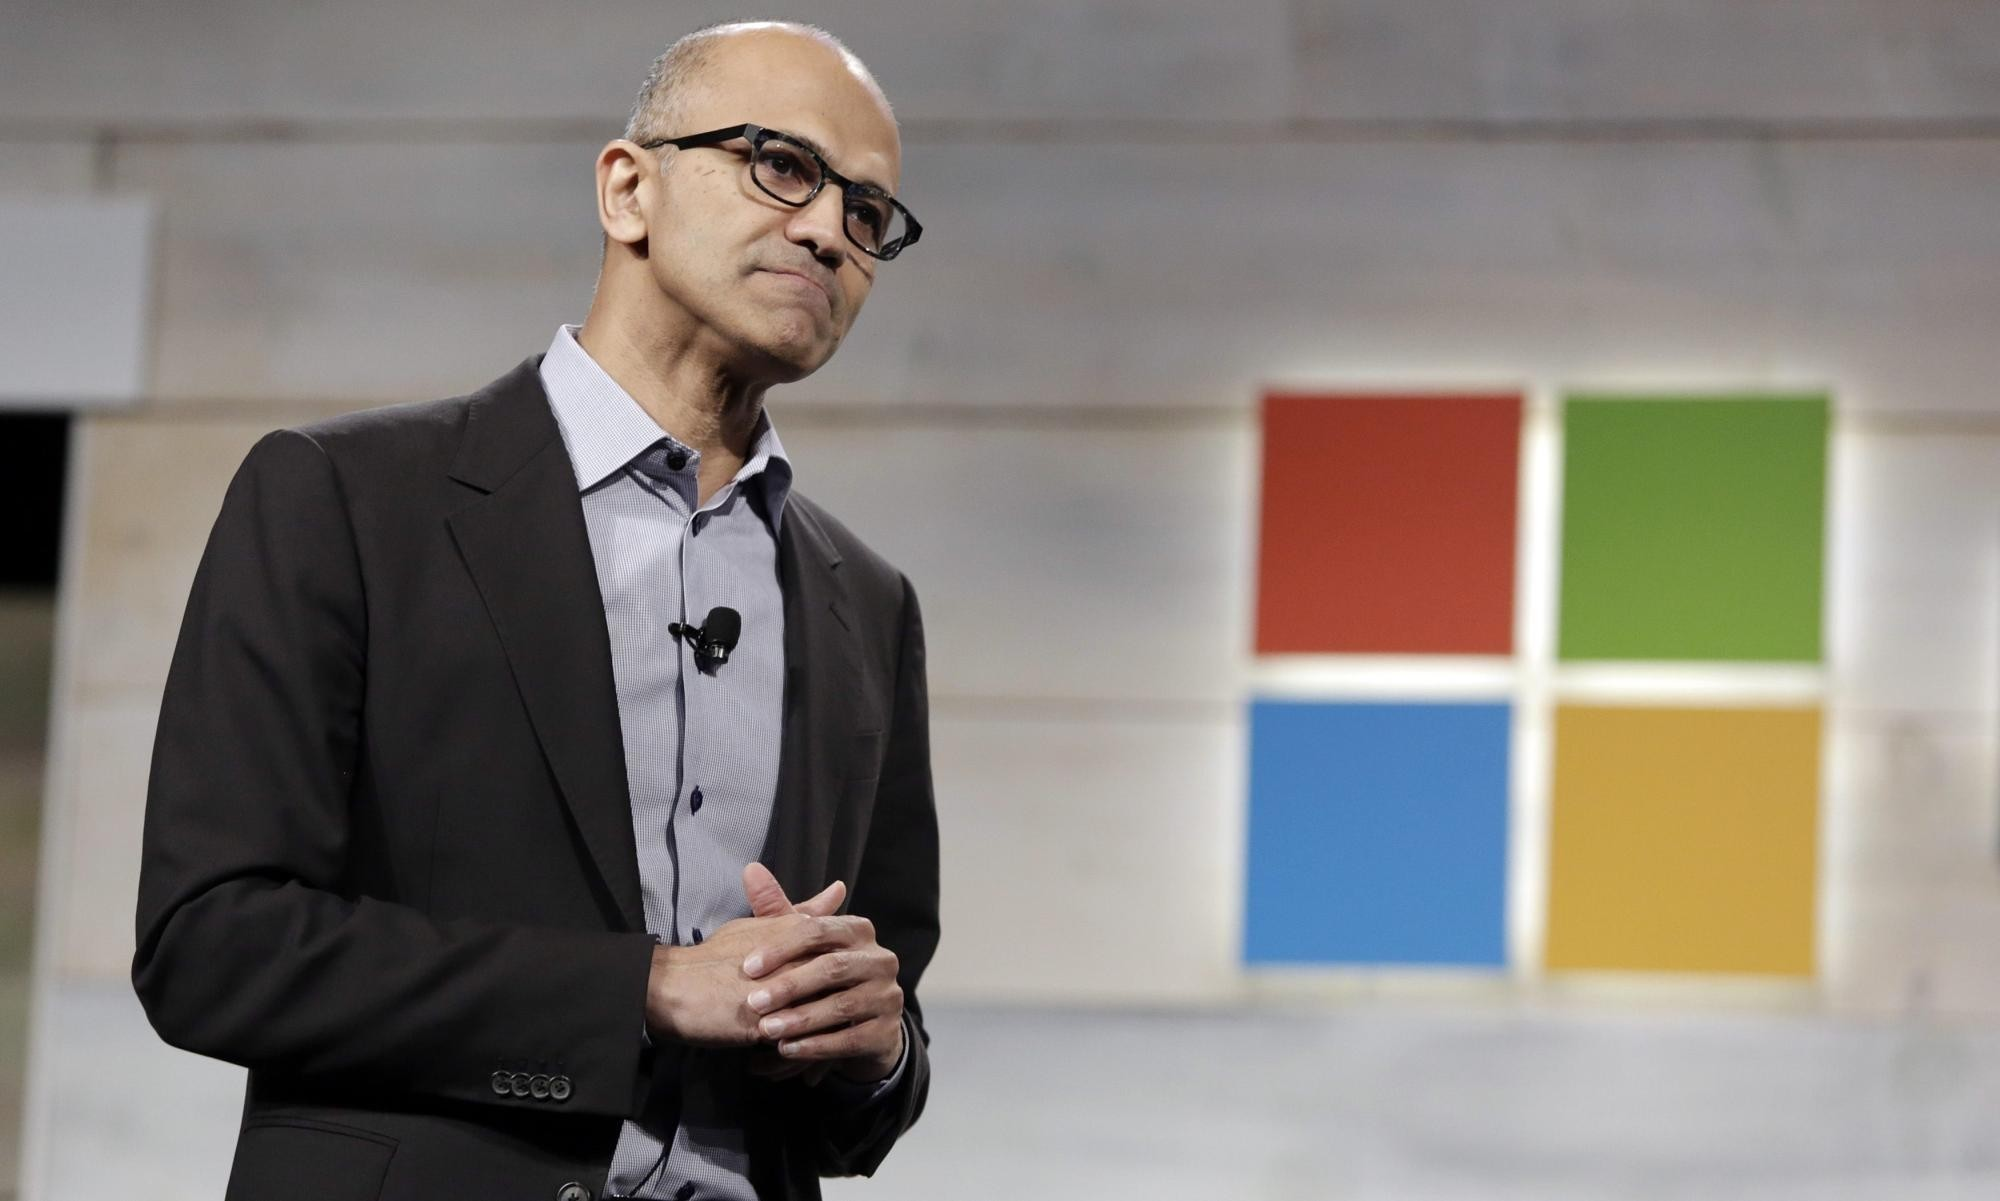 Microsoft to offer Windows 10 operating system for free